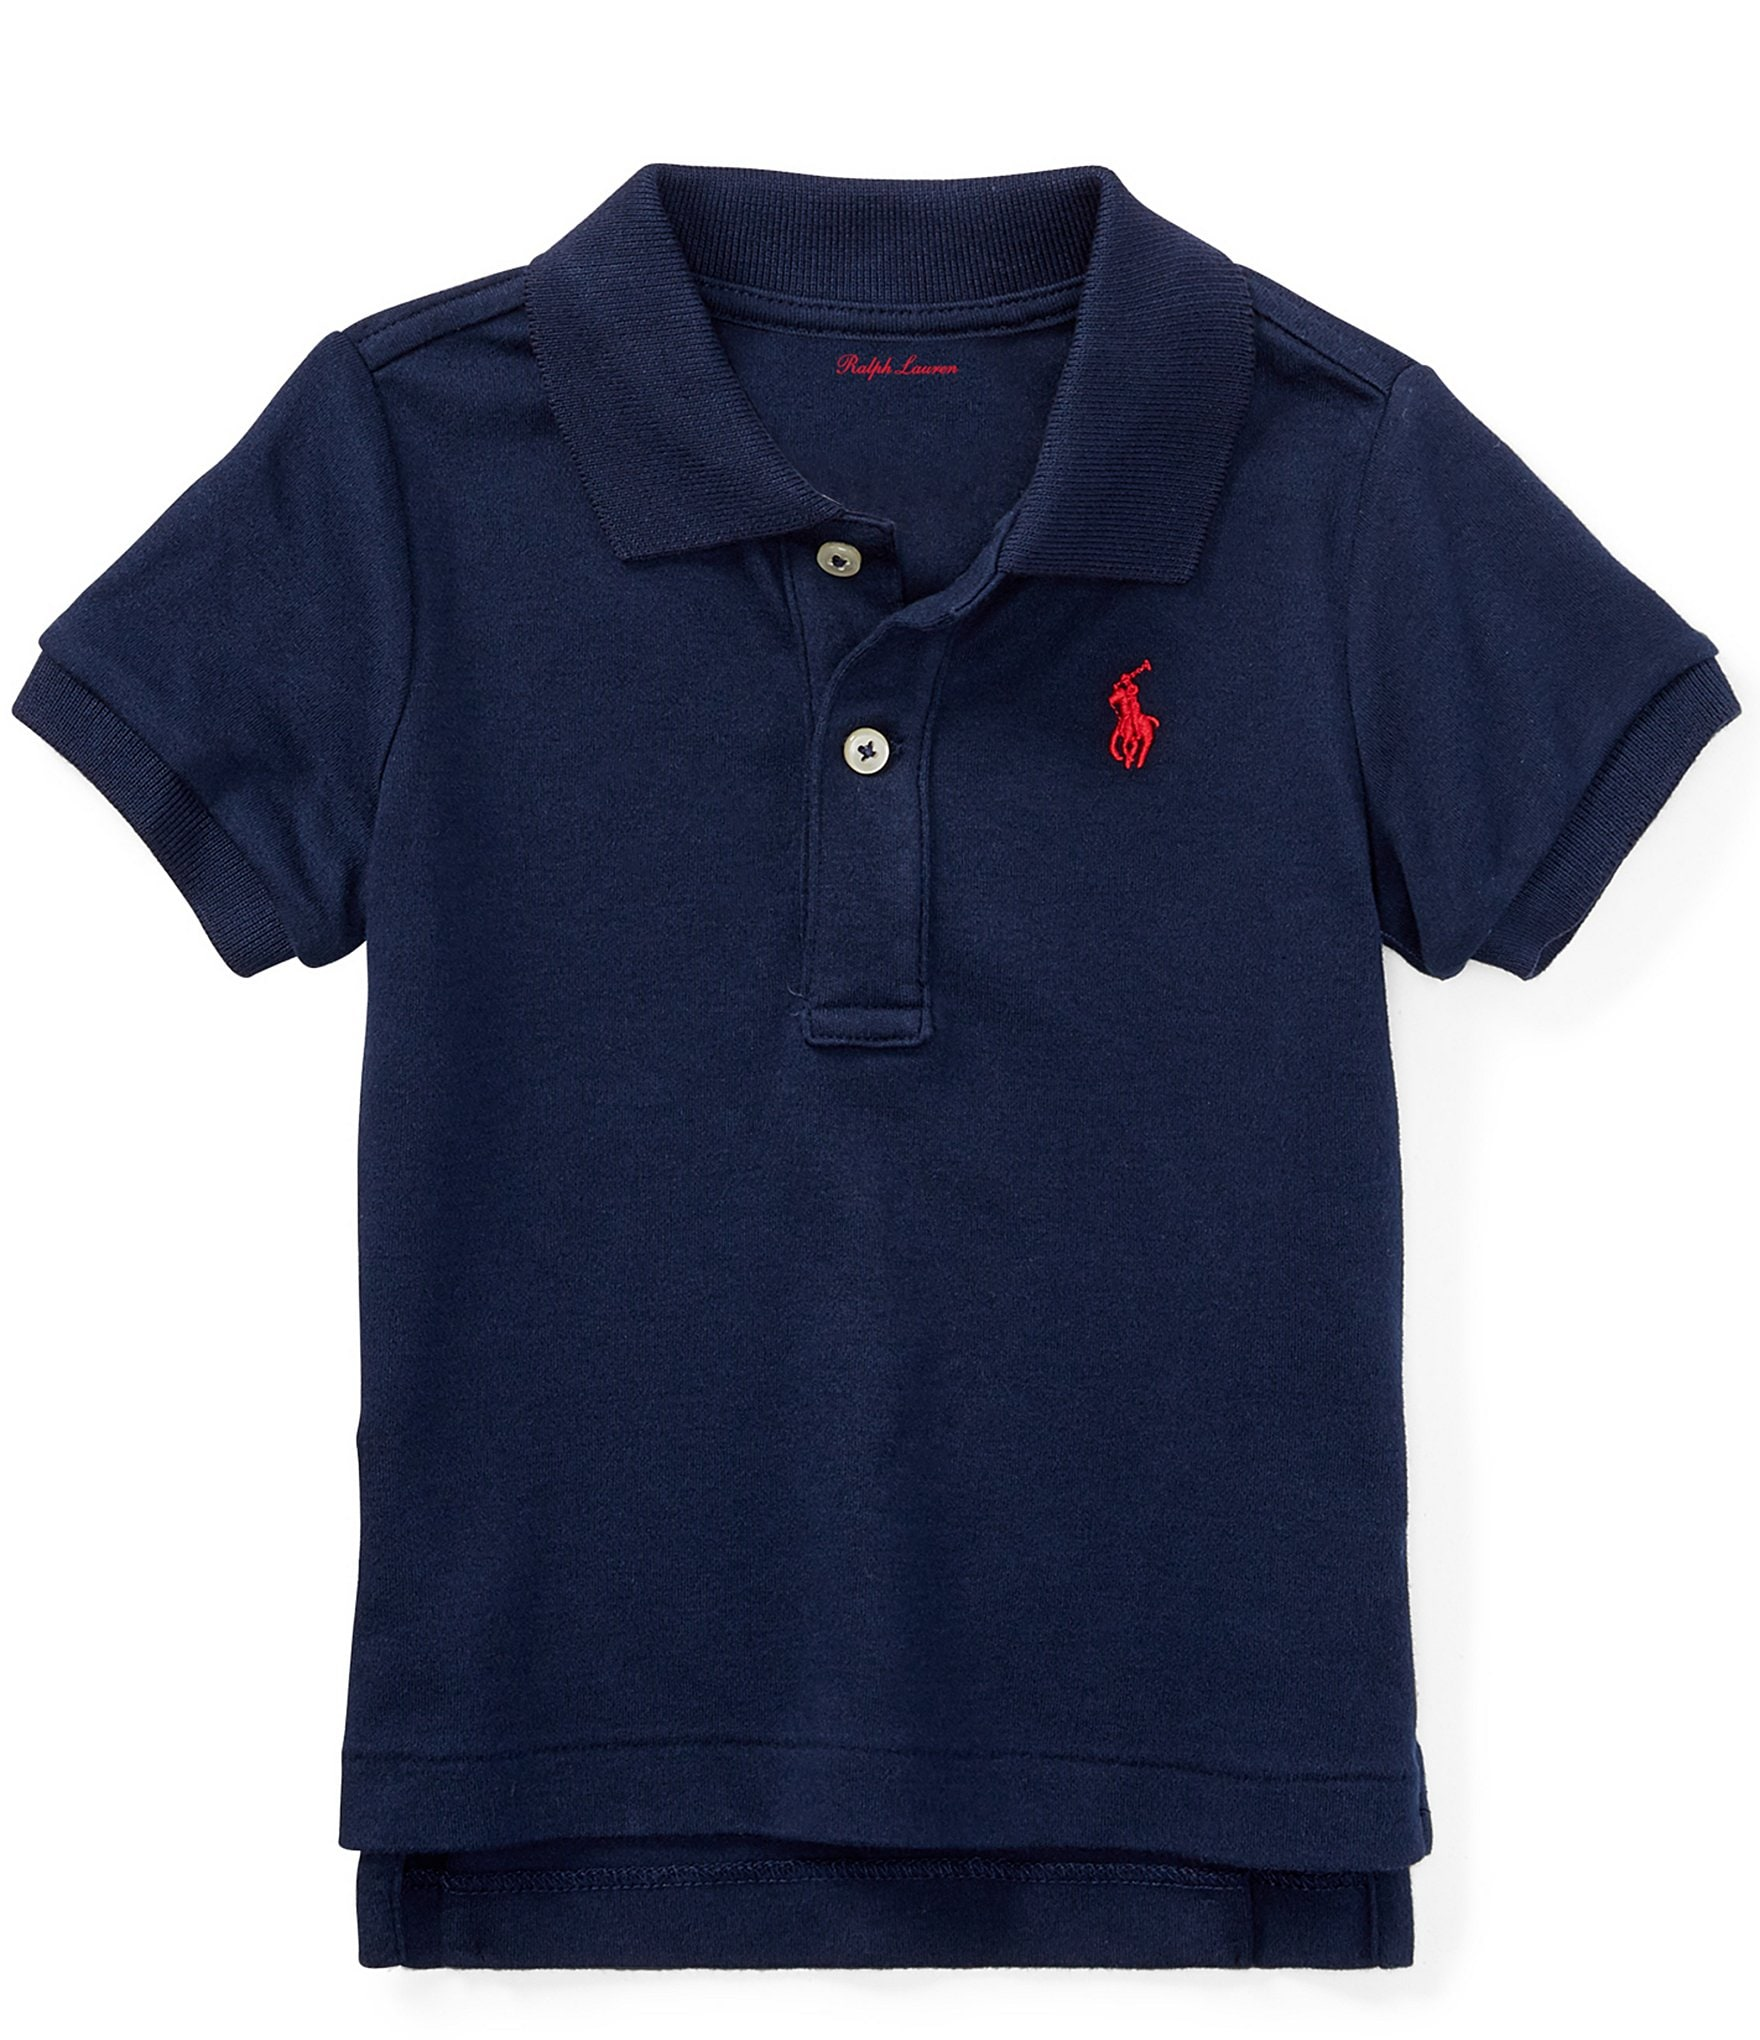 Ralph lauren childrenswear baby boys 9 24 months interlock for Ralph lauren kids